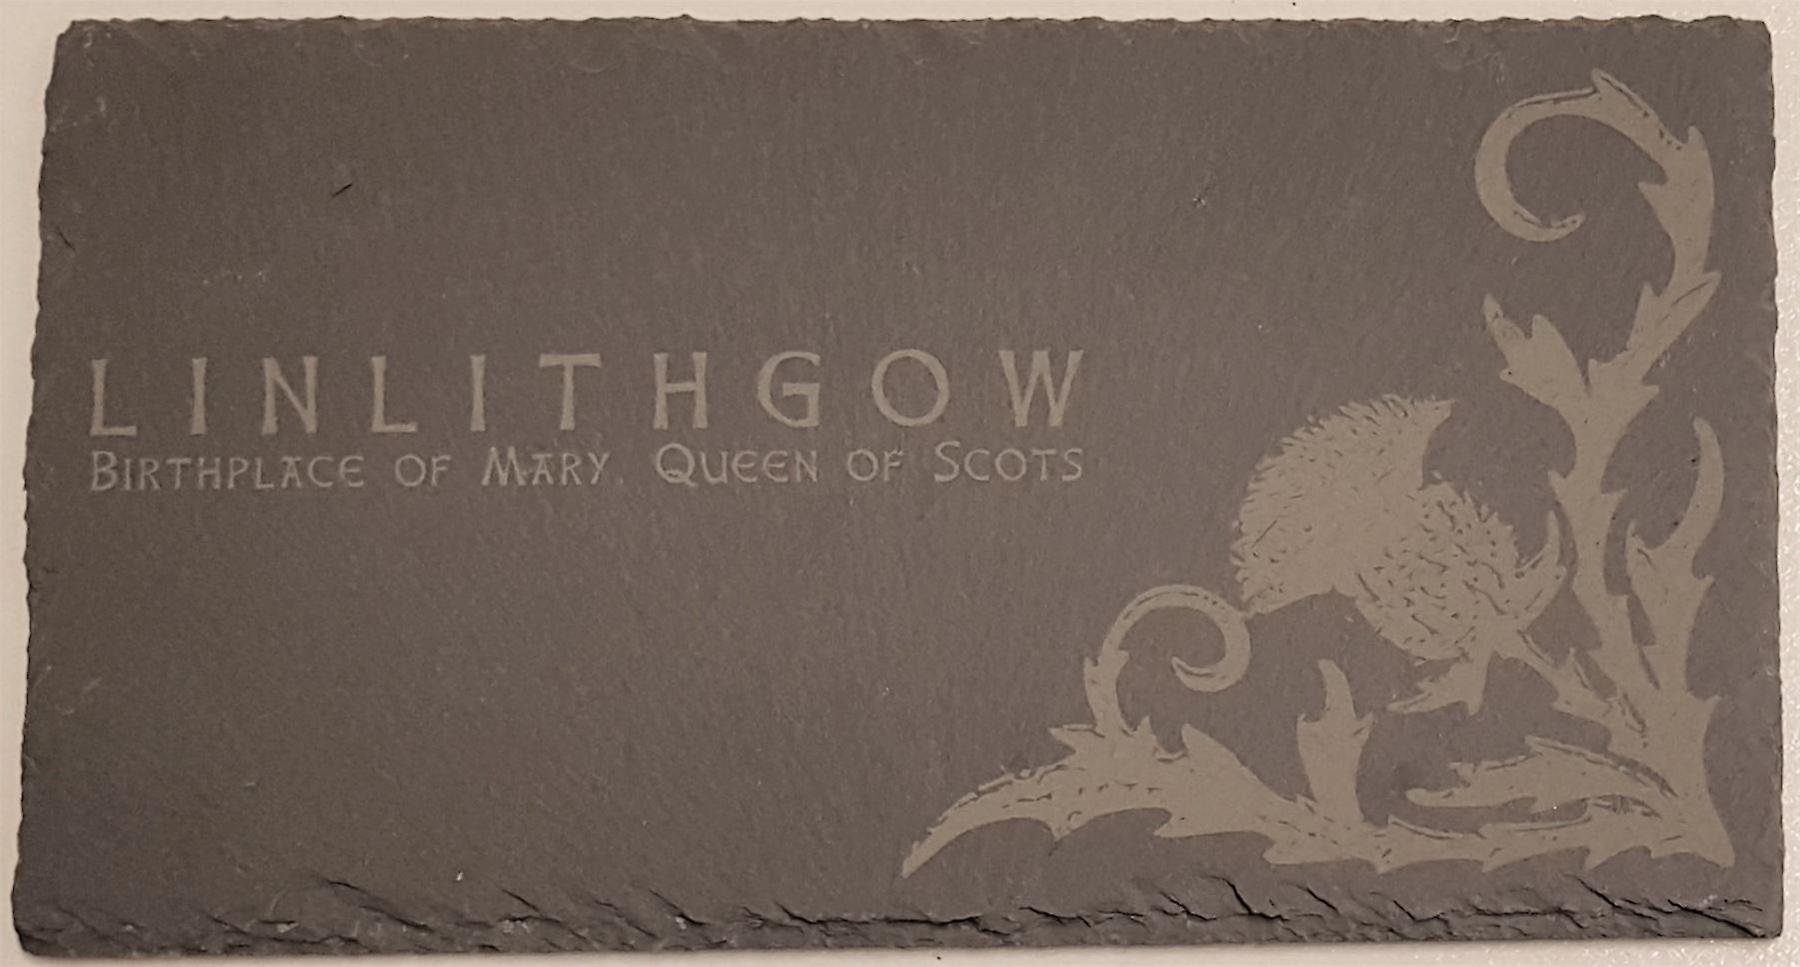 Graham Wishart Laser Etchings Oblong Slate Small Linlithgow Thistle